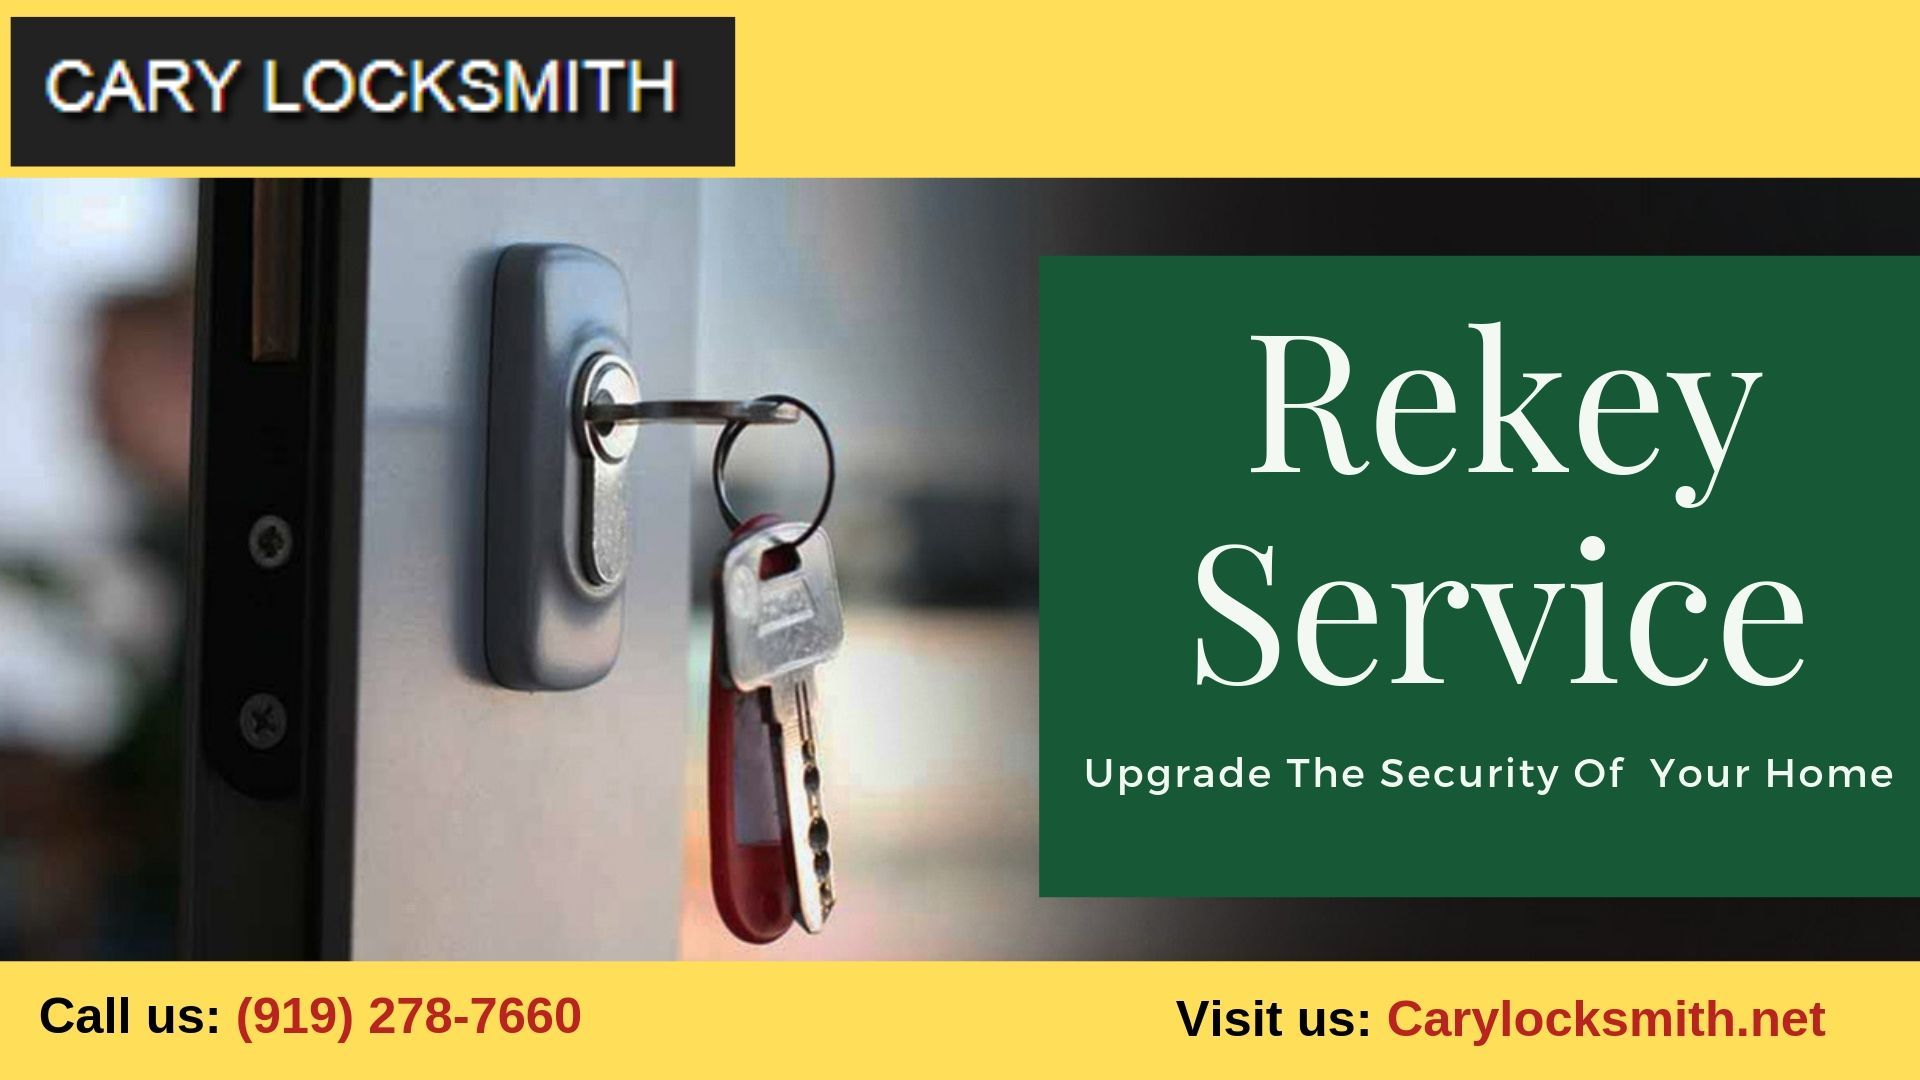 Are you searching for best rekey service our cary